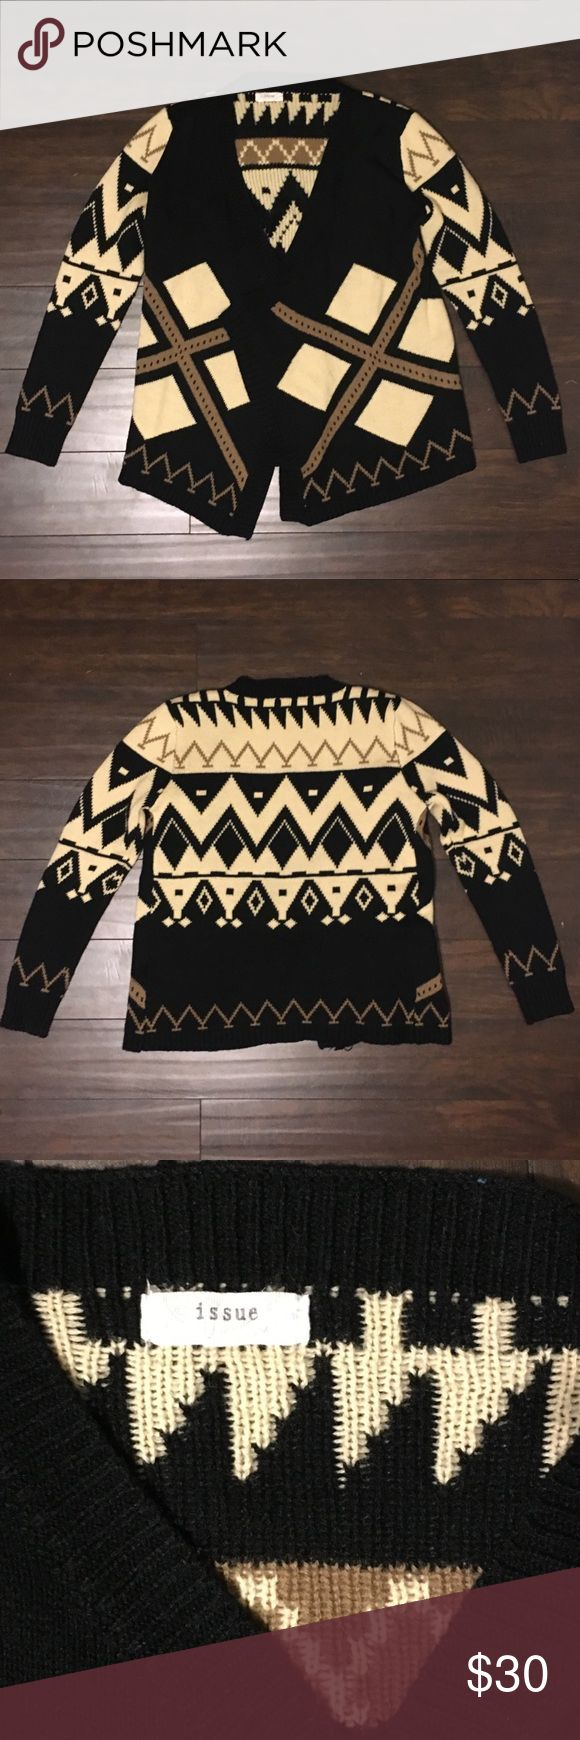 Issue Aztec Cardigan This is an Issue Aztec print cardigan. It is a size S/M and is in great condition. Issue Sweaters Cardigans